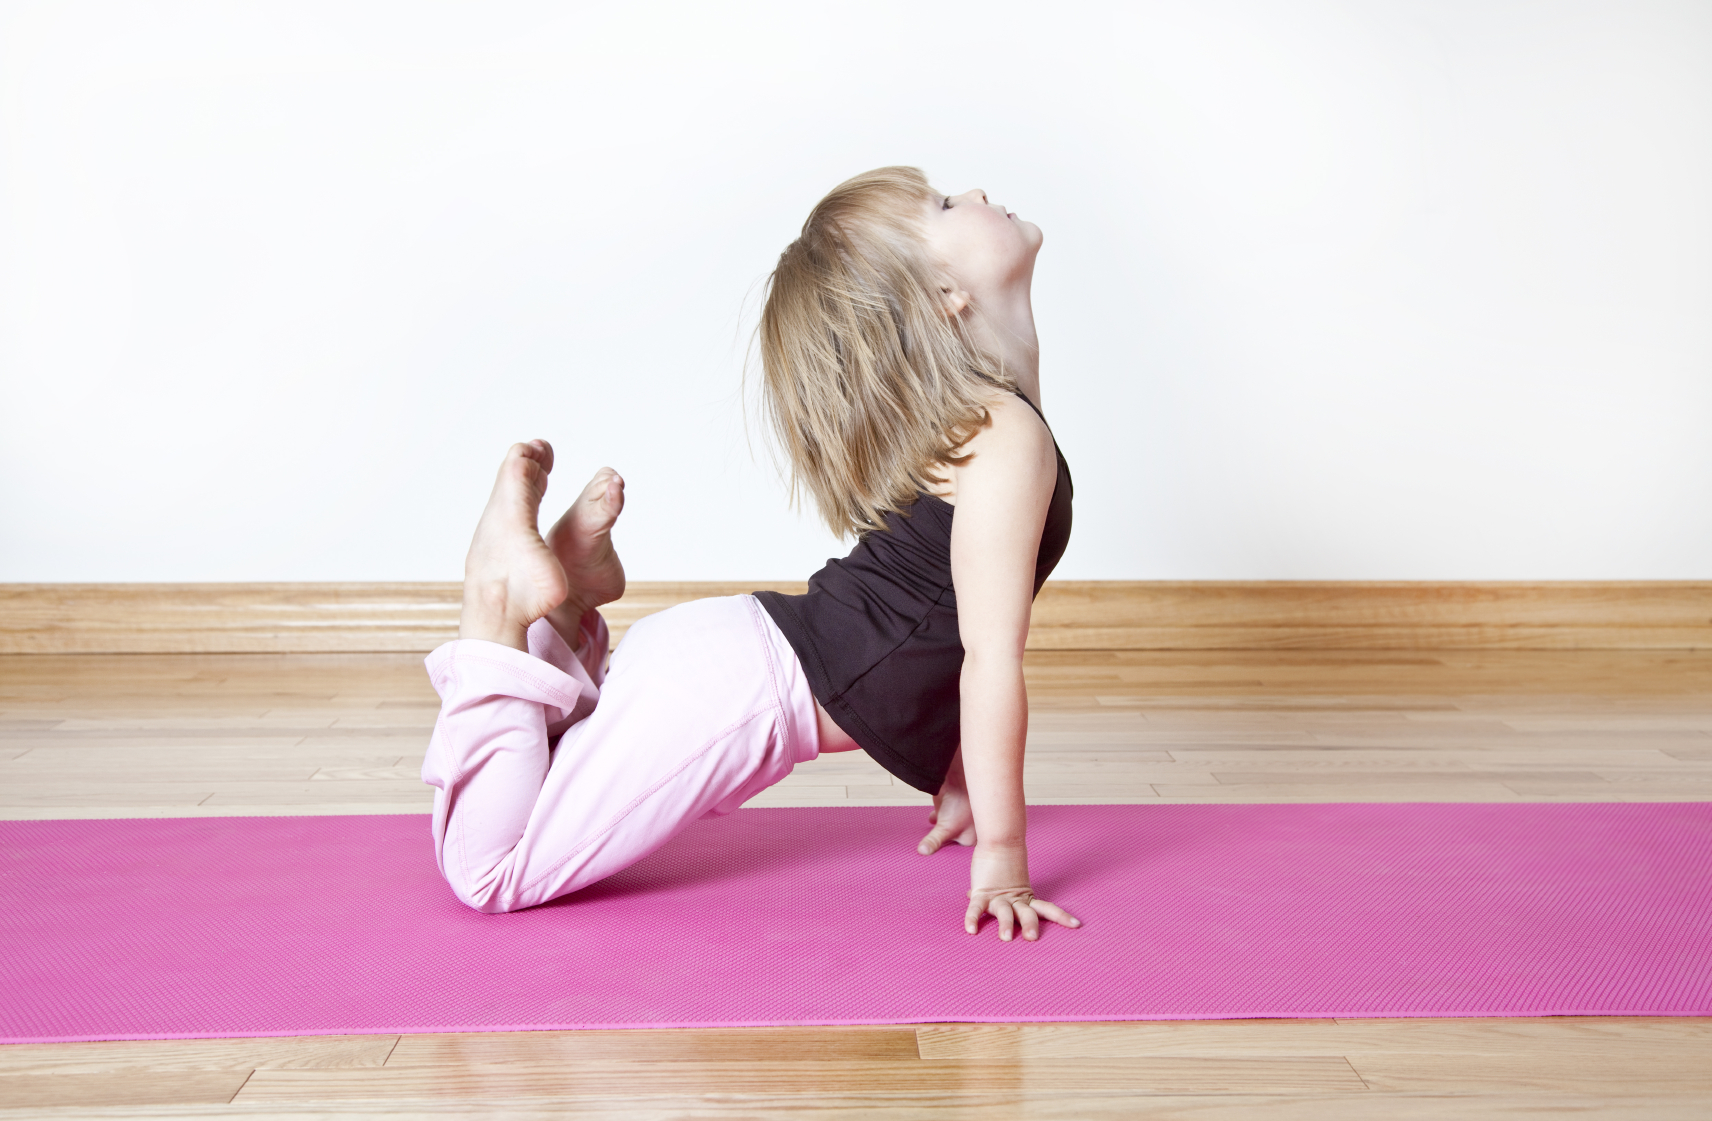 Can I really do yoga at home? 1